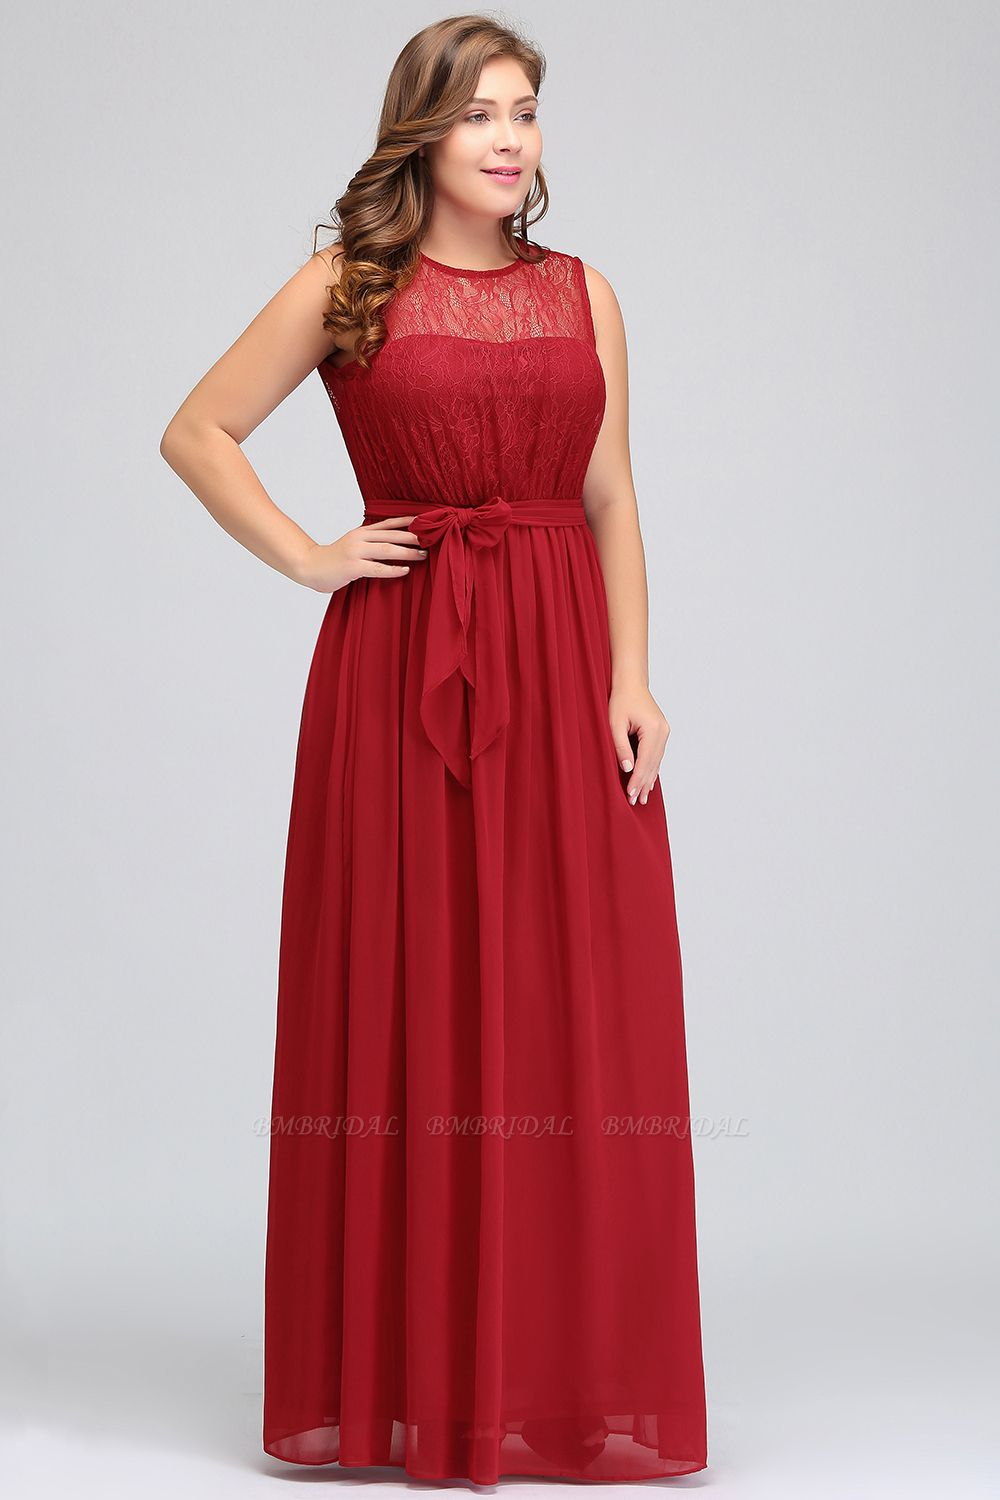 BMbridal Plus Size Jewel Sleeveless Red Lace Long Bridesmaid Dress with Ruffle